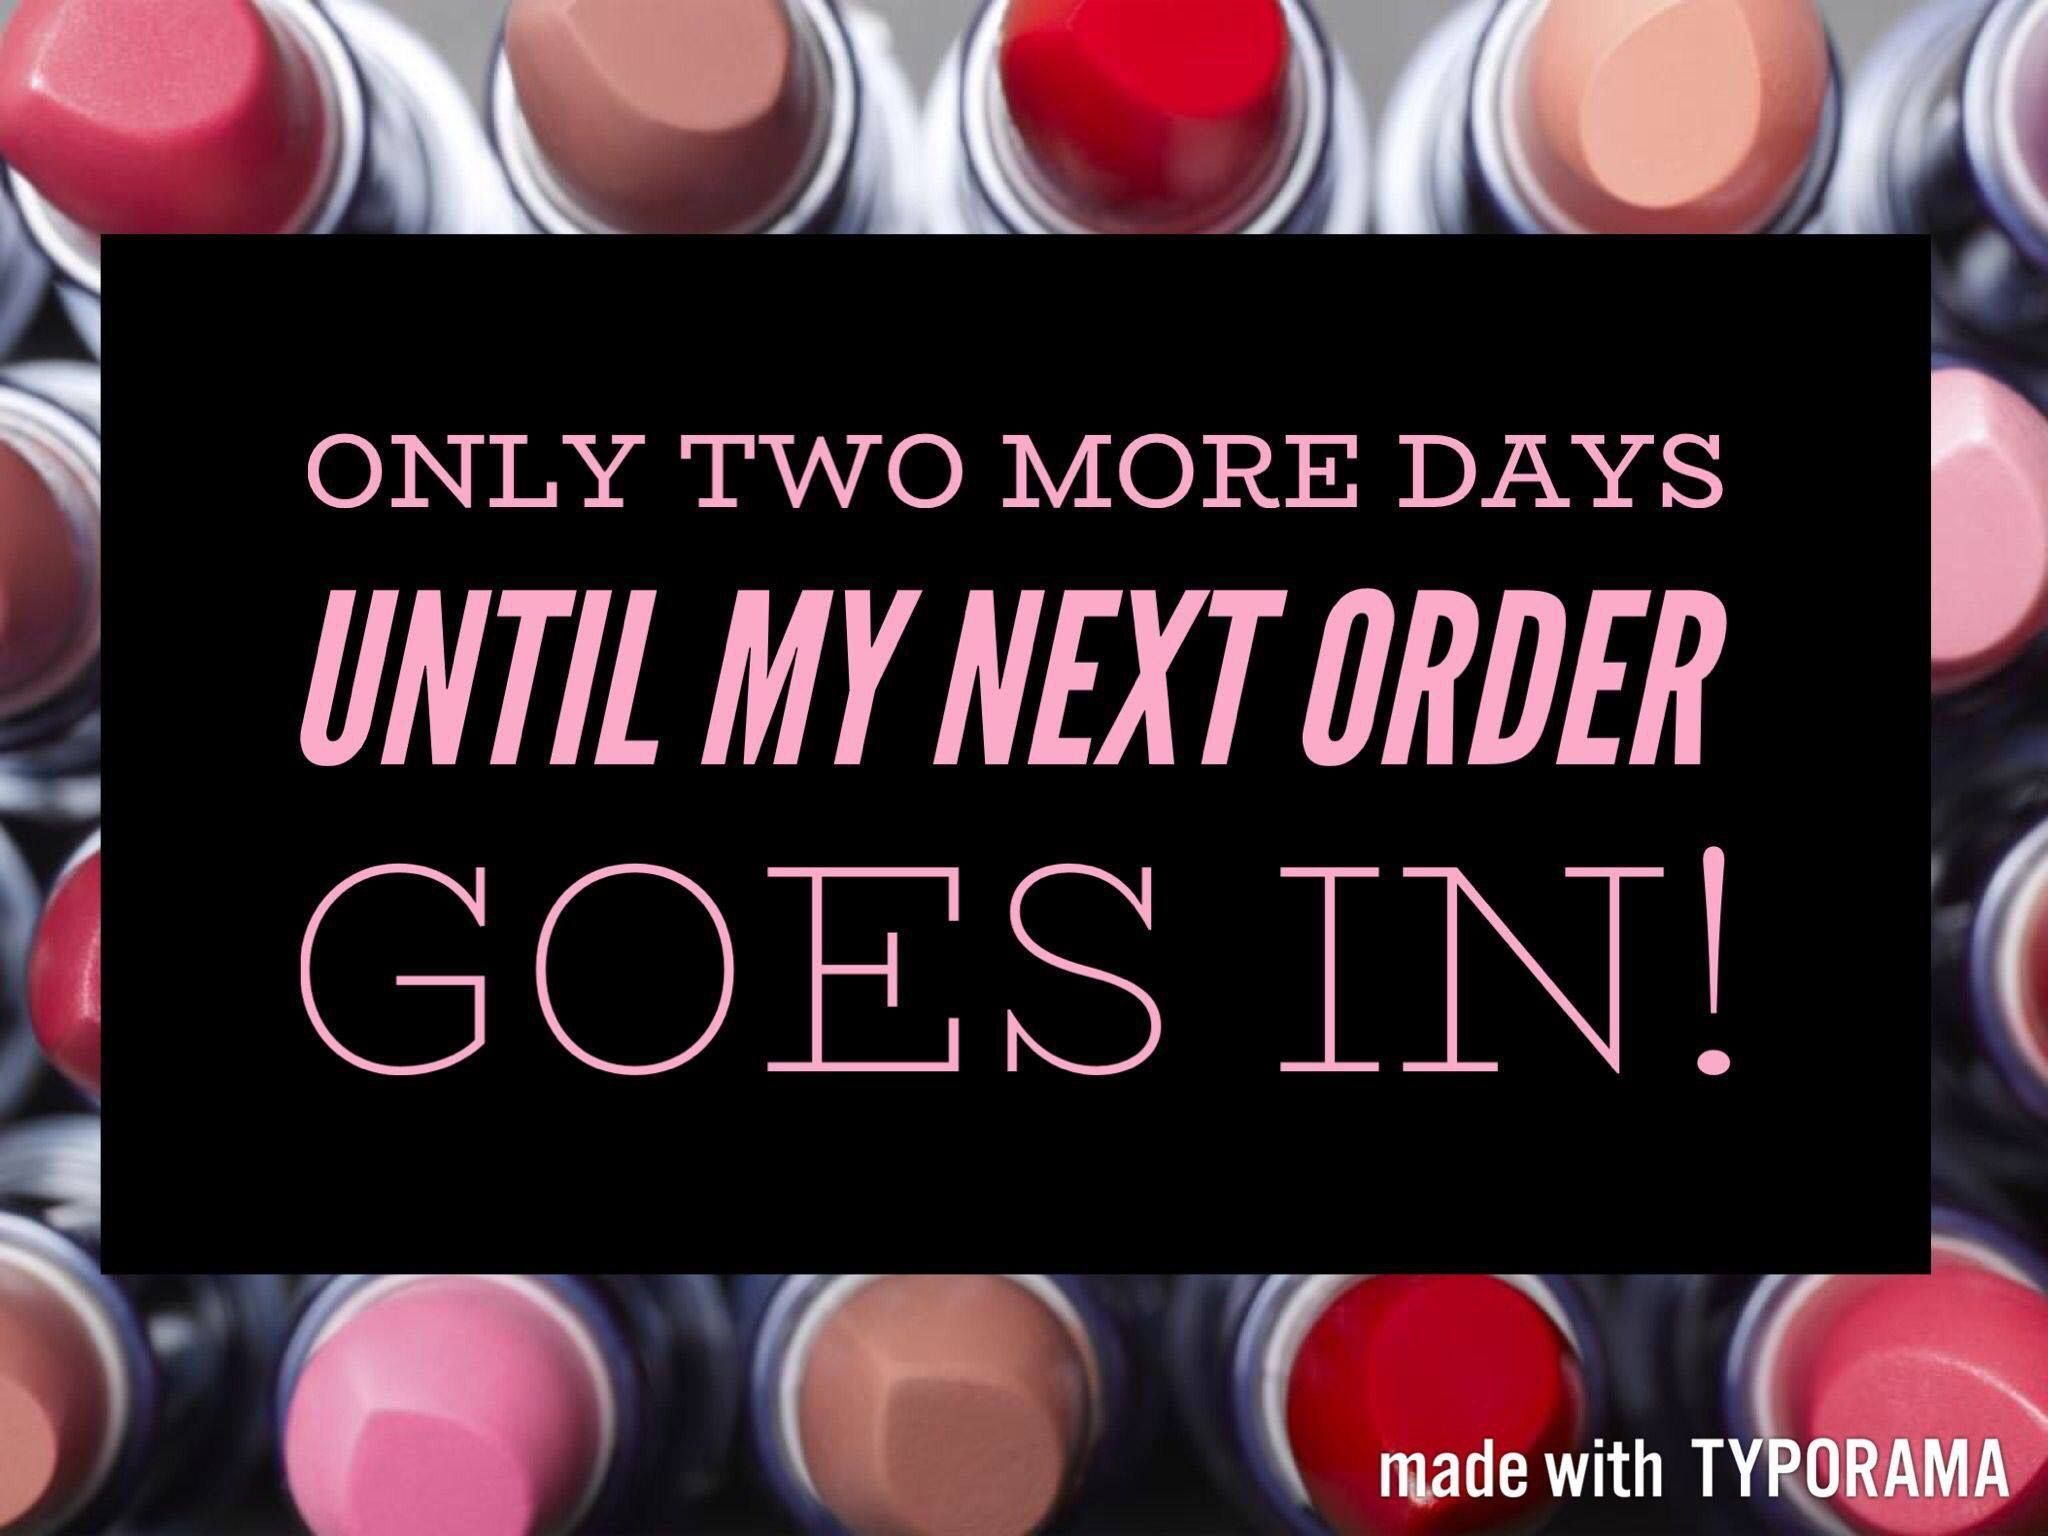 My next Avon order is going in on Wednesday 11/1! Contact